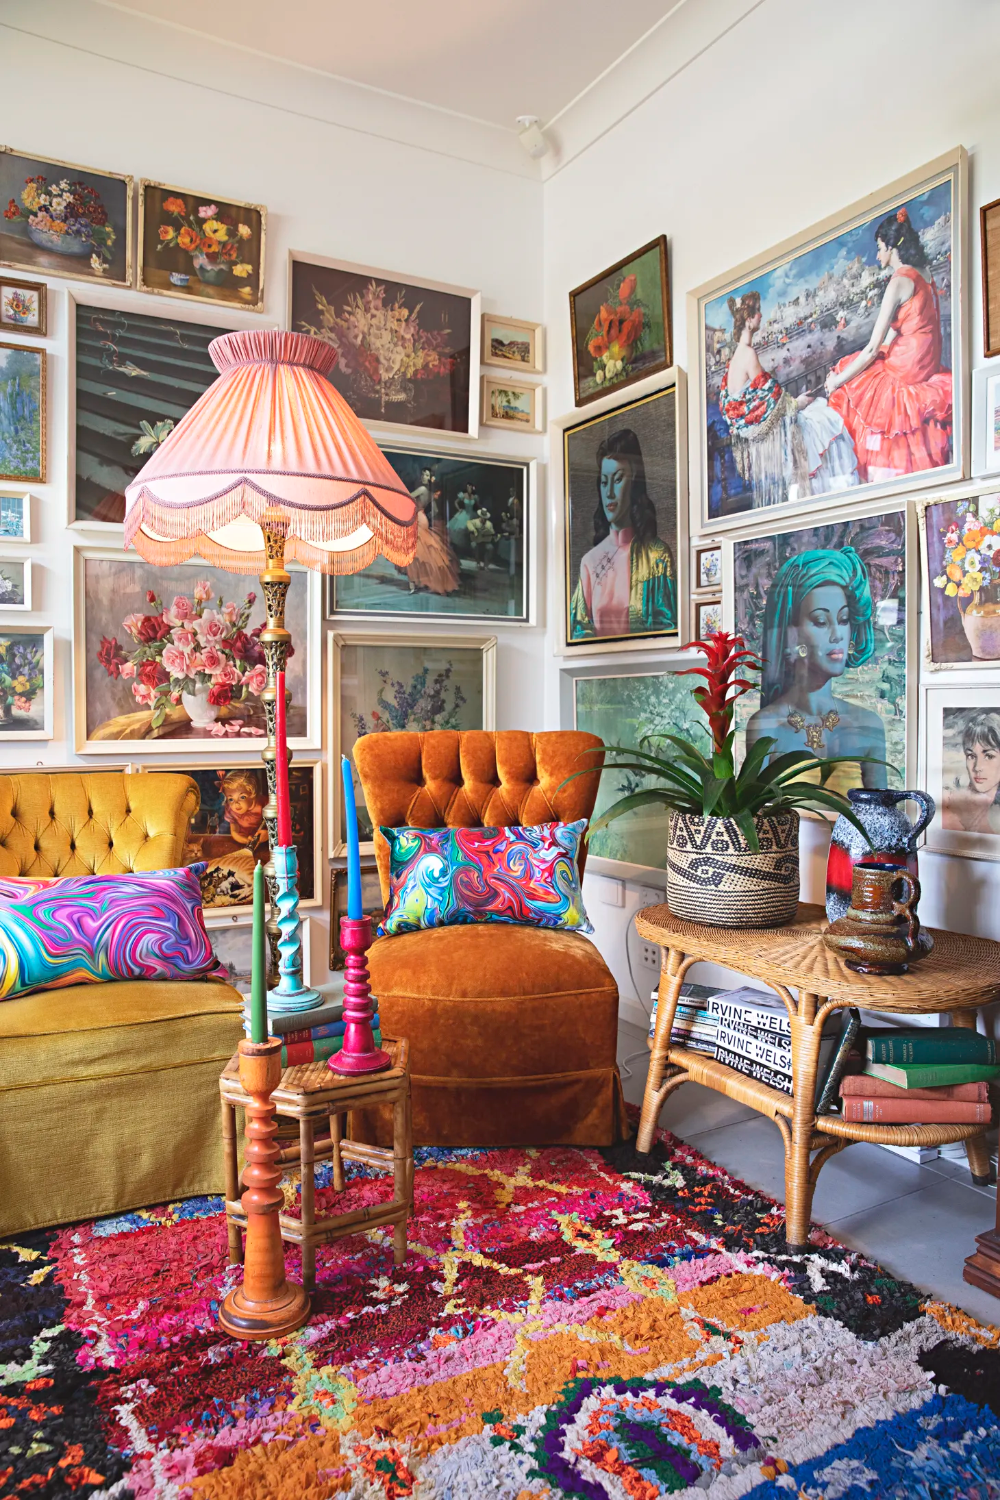 Photo of This Plant-Filled, Colorful Australian Home Is the Very Definition of Bohemian Maximalist